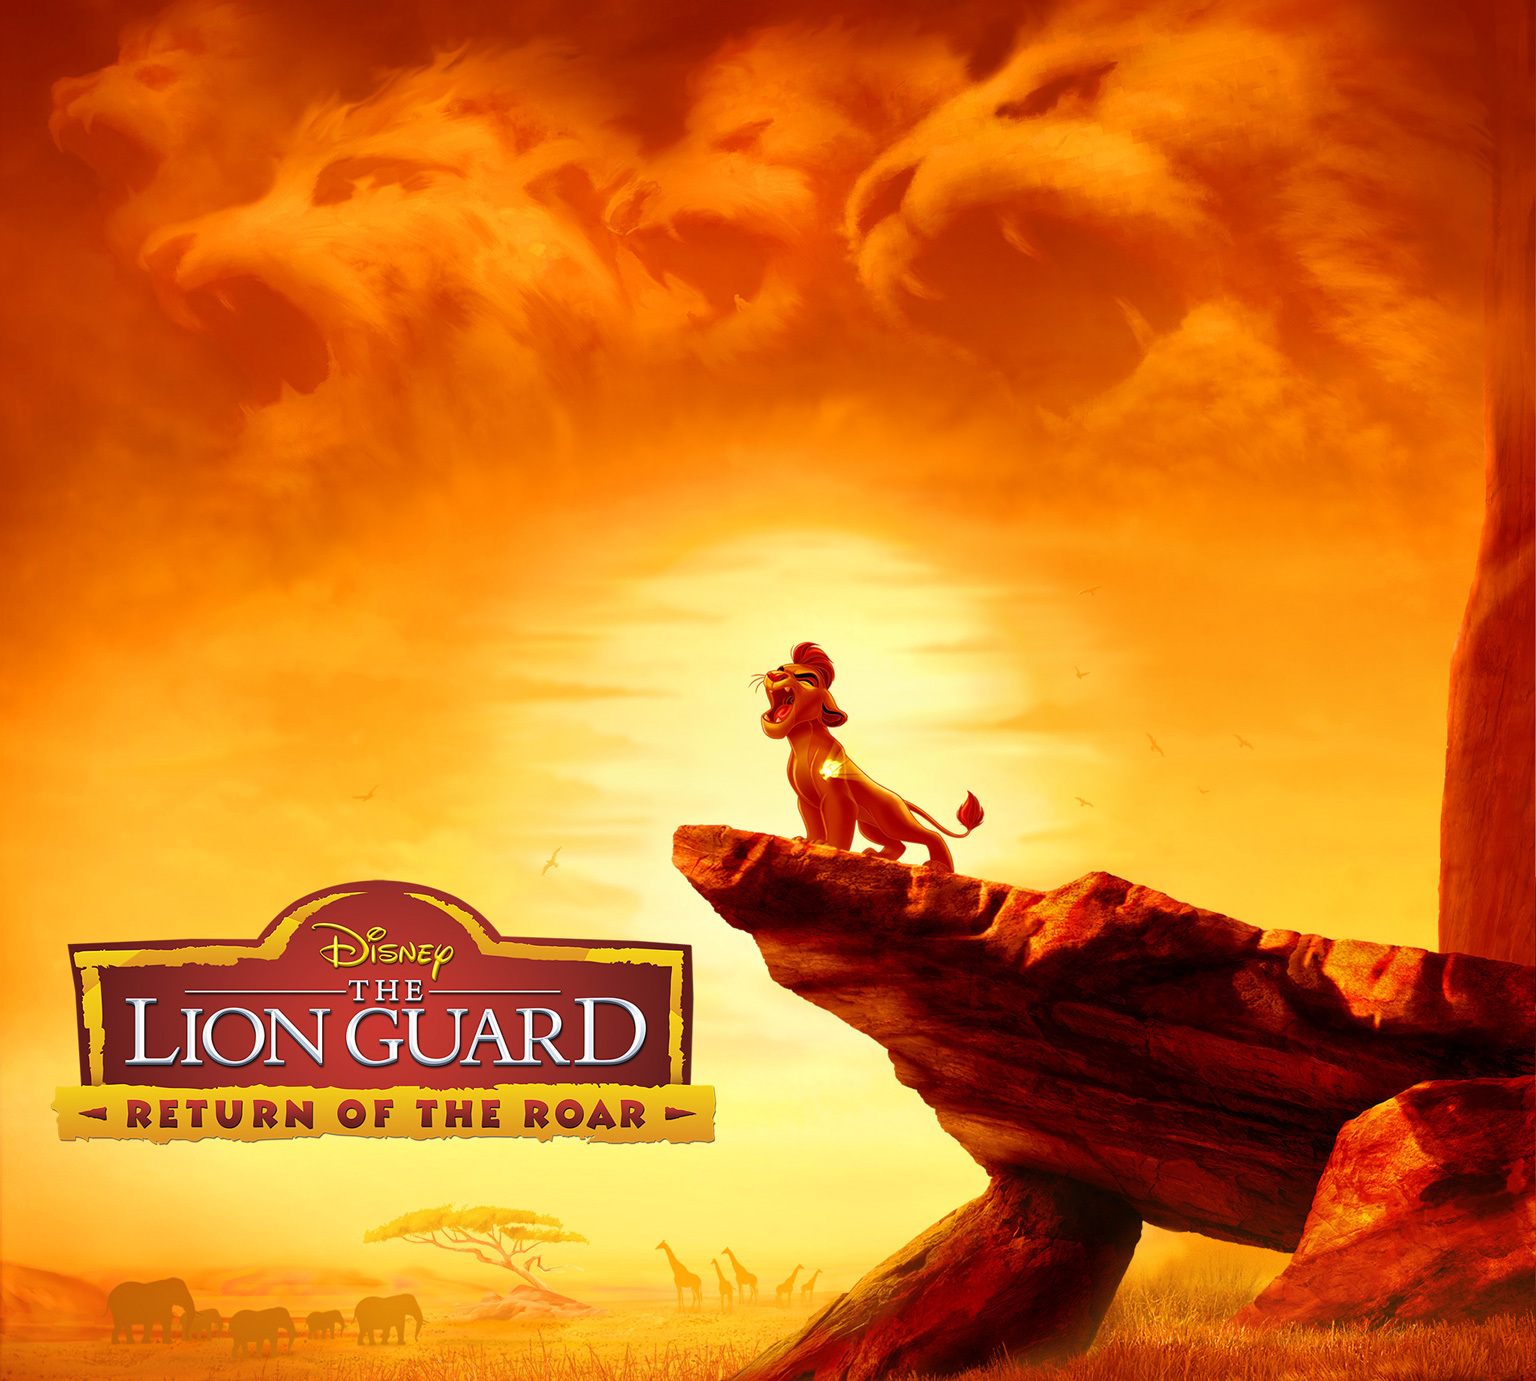 Disney Junior S The Lion Guard Return Of The Roar Premieres November 22 2015 Lionguardevent R We There Yet Mom